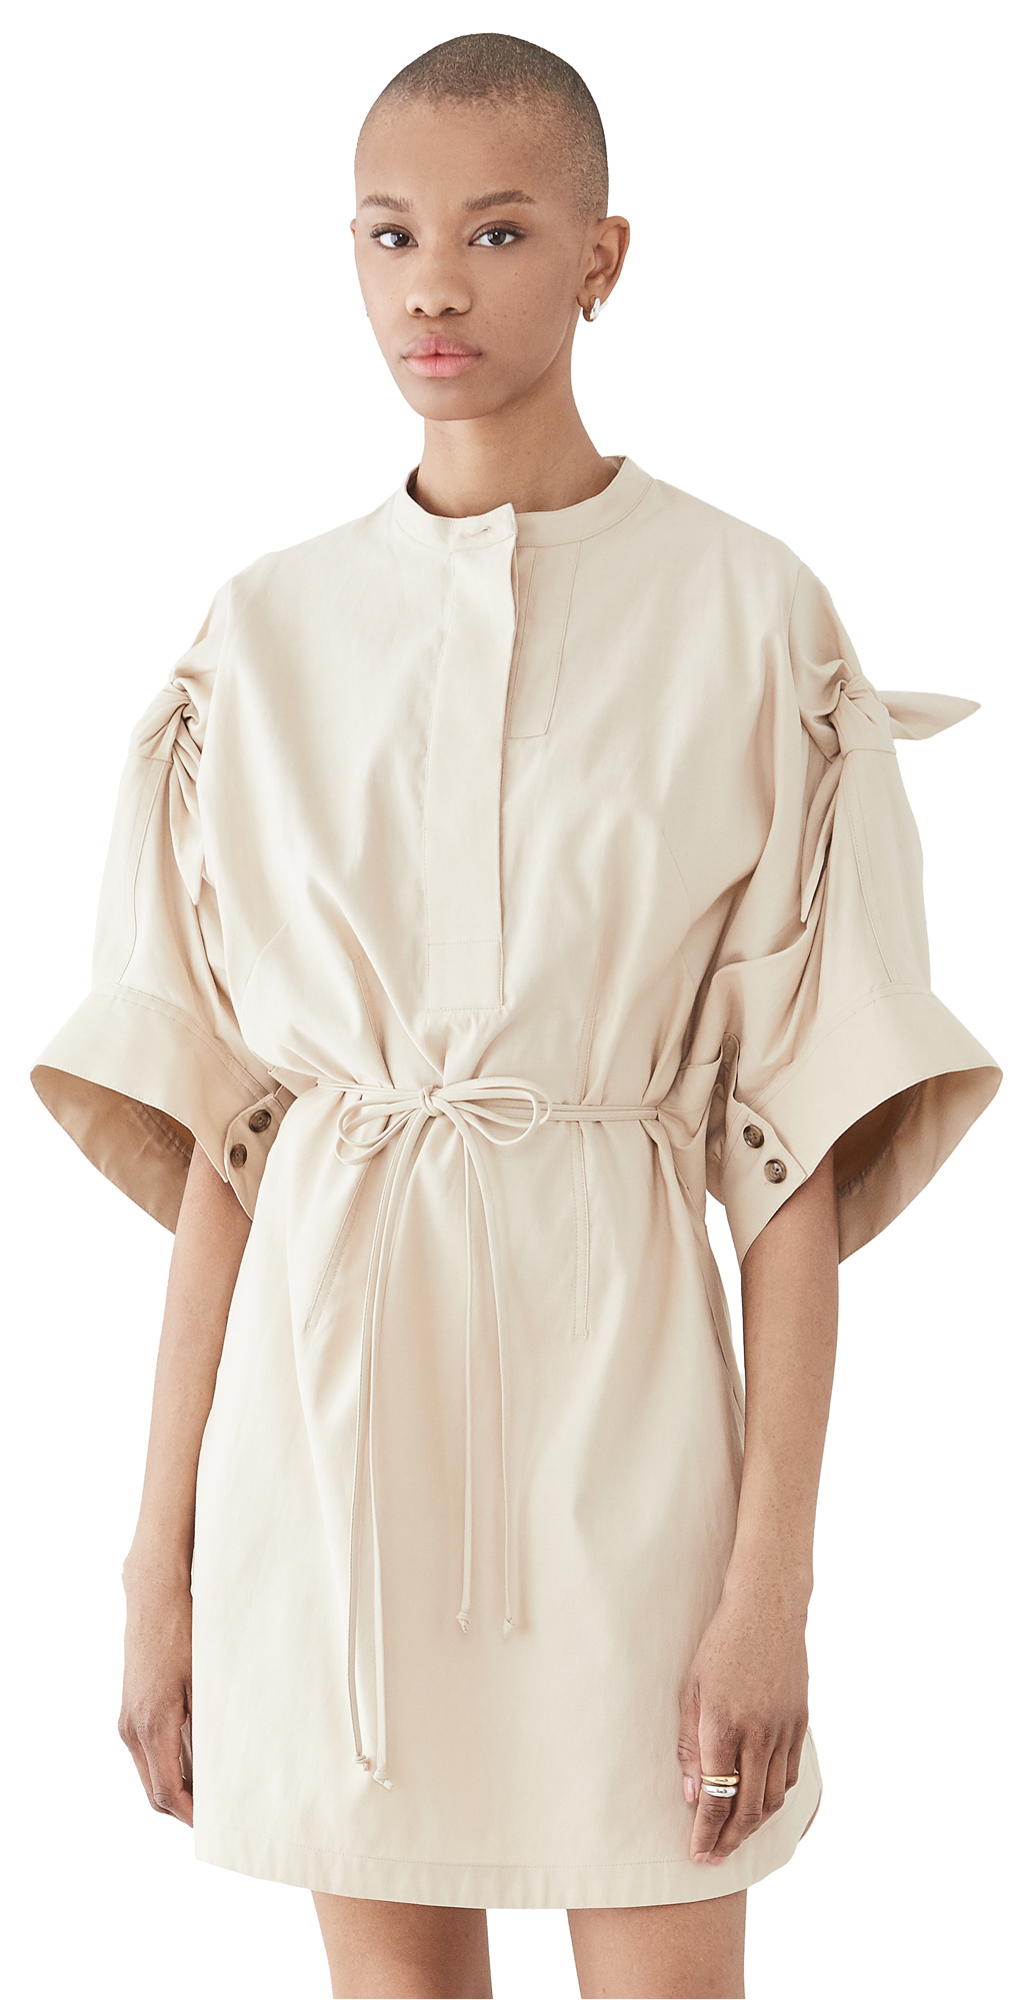 3.1 Phillip Lim KNOTTED SLEEVE MID LENGTH DRESS